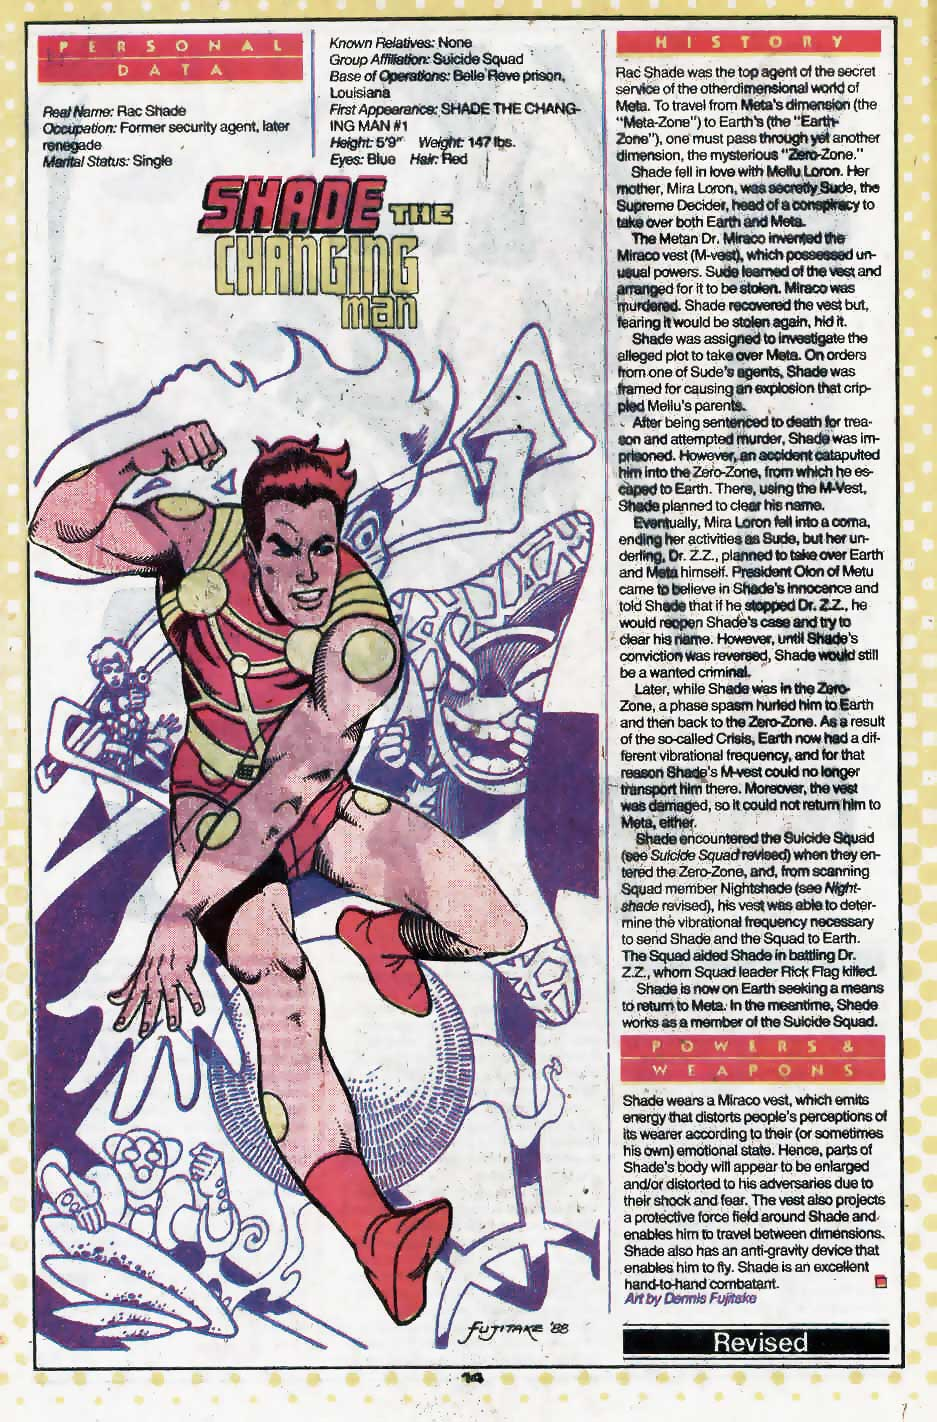 Who's Who Update 88 #3 Shade the Changing Man by Dennis Fujitake